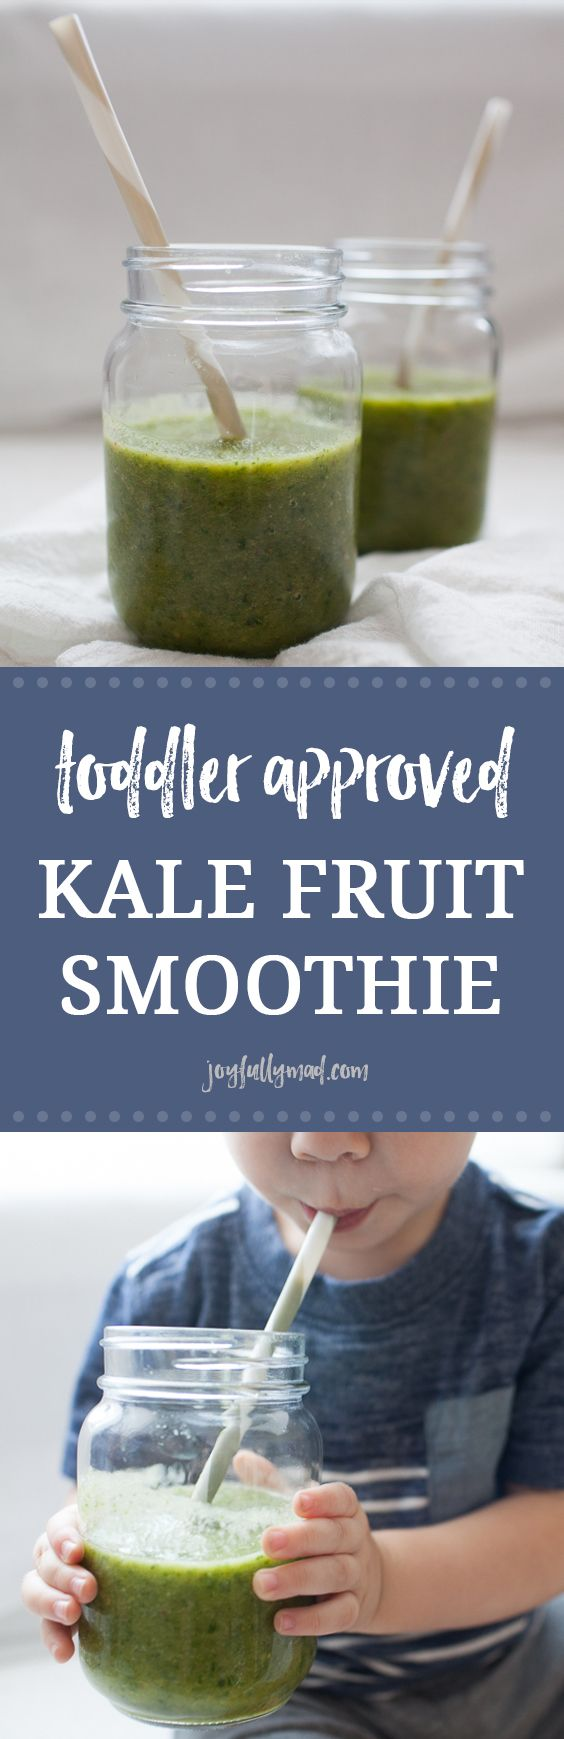 This toddler approved kale fruit smoothie is the perfect summer treat! It's packed with fruits and vegetables, refined sugar and dairy free, and so tasty! The whole family, kids and adults, will love this easy smoothie recipe!